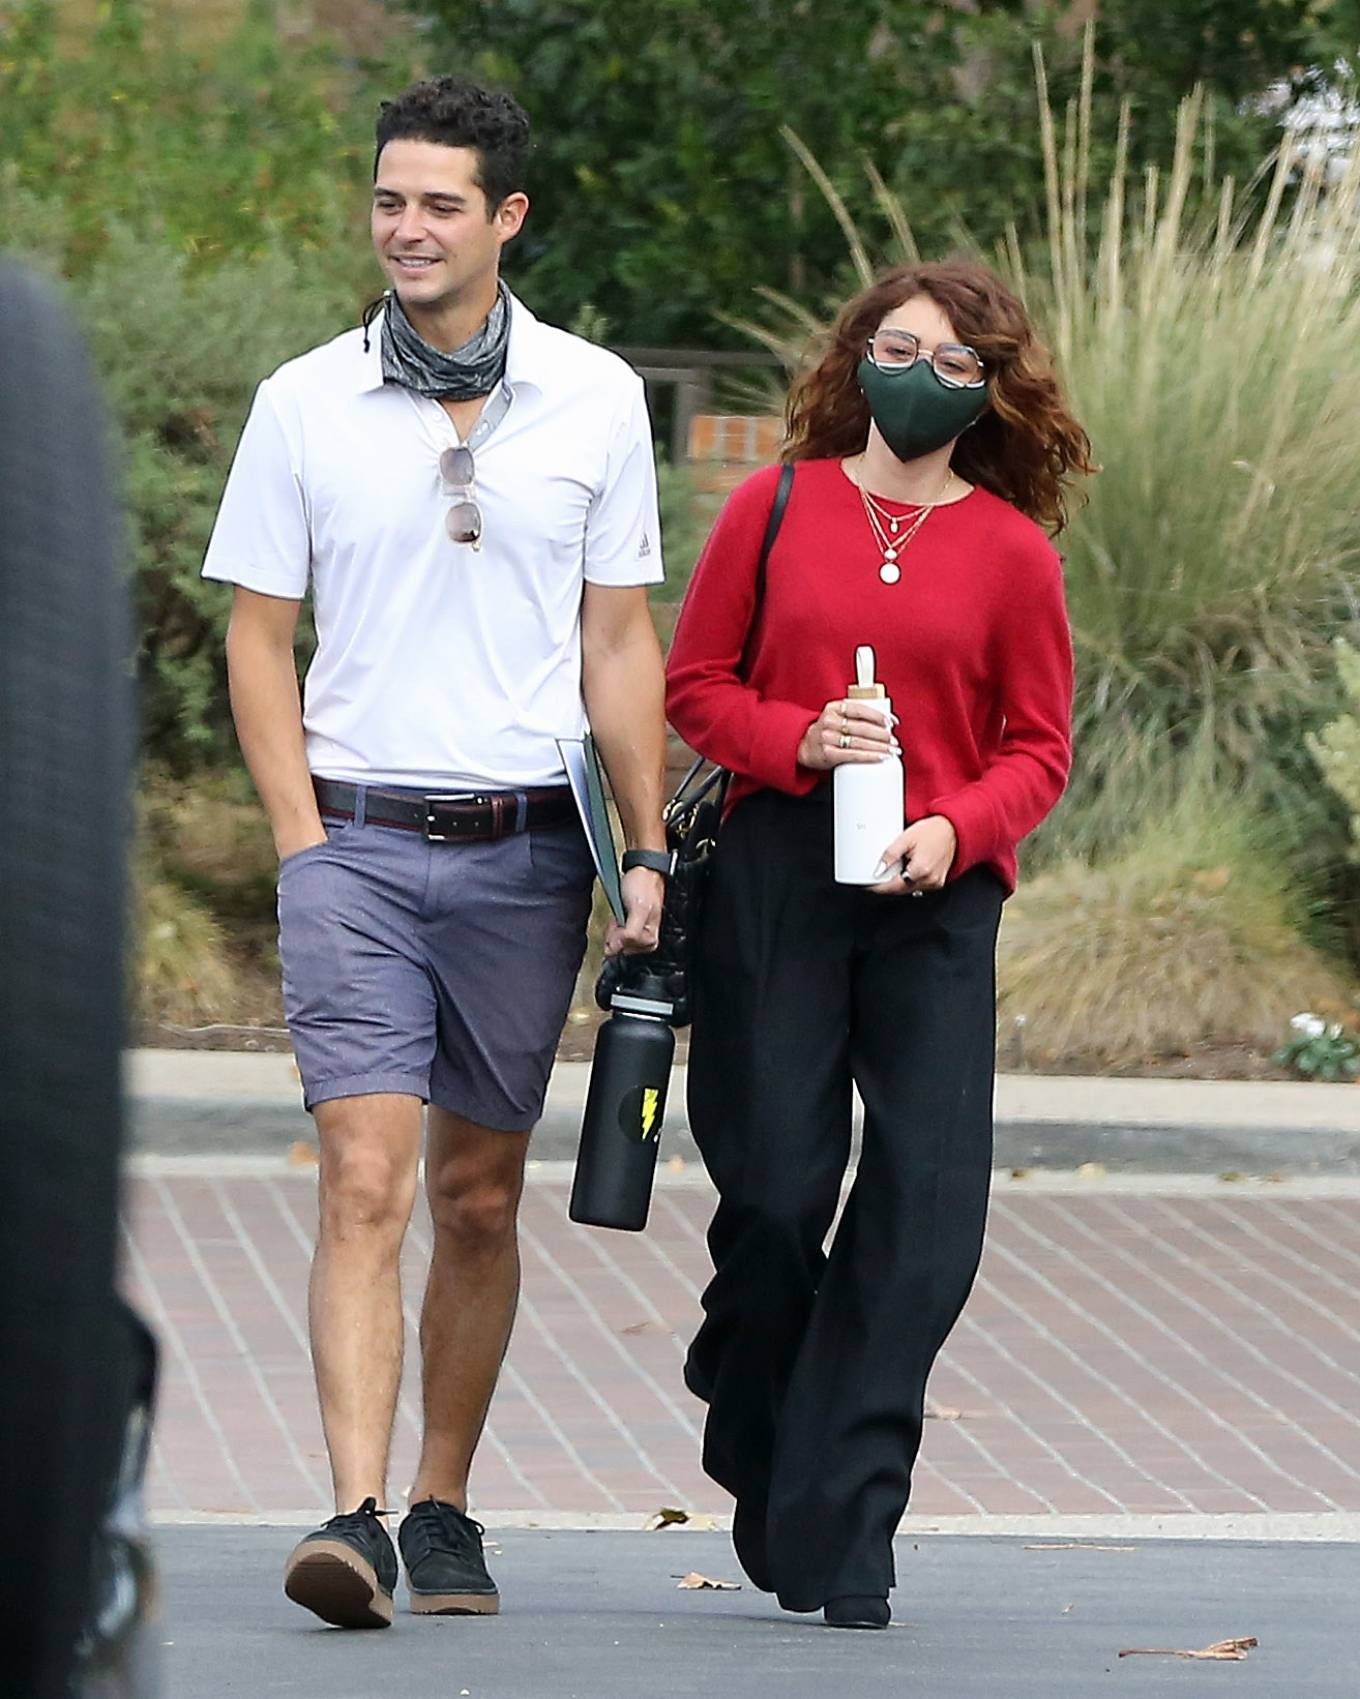 Sarah Hyland - checking out wedding venues in Los Angeles